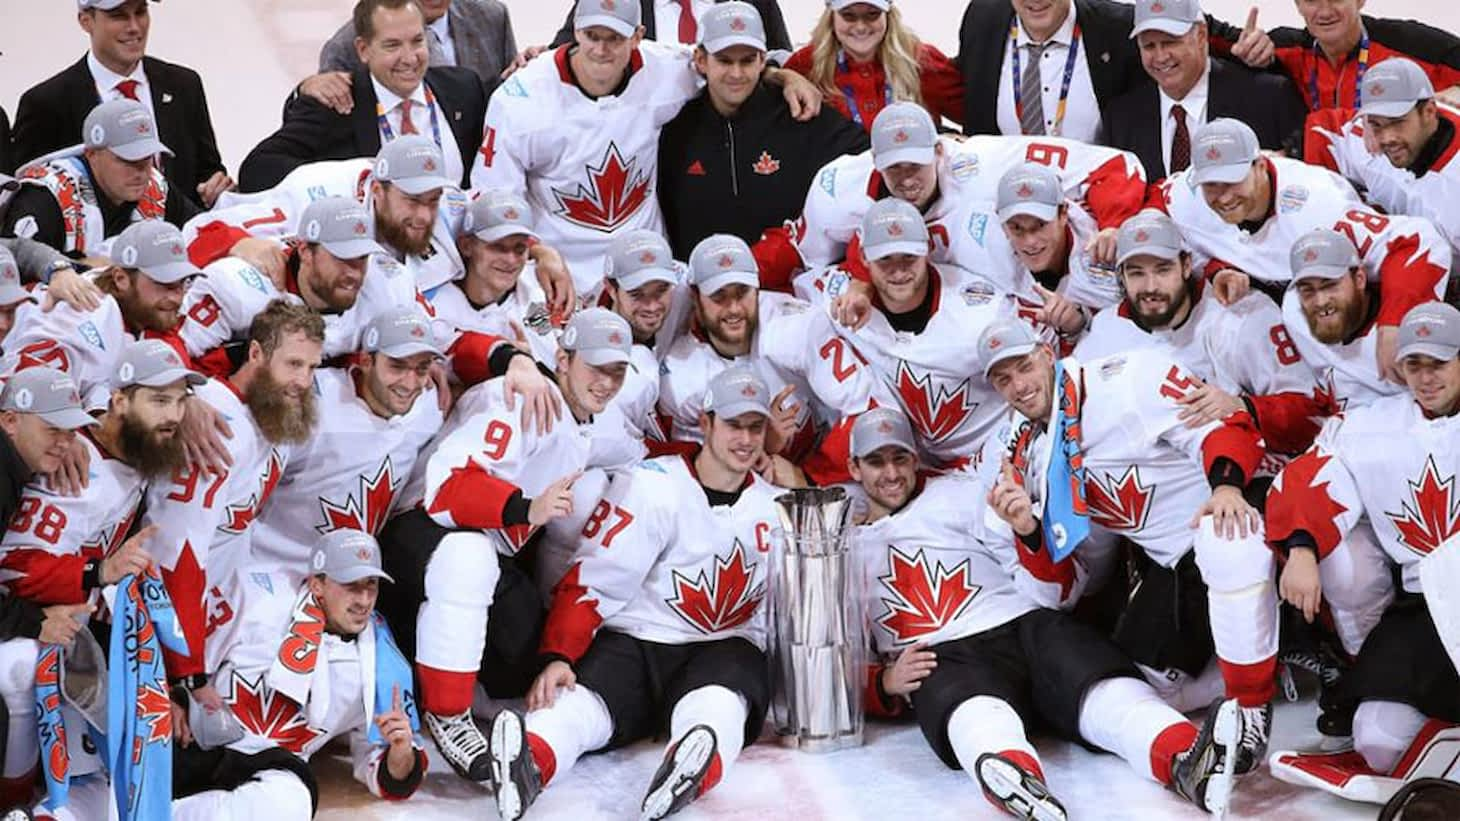 an analysis of the hockey soccer night in canada The us women's hockey team celebrates after defeating canada in a shootout to win the gold medal at the olympic winter games pyeongchang 2018 at gangneung hockey centre on feb 22, 2018 in.